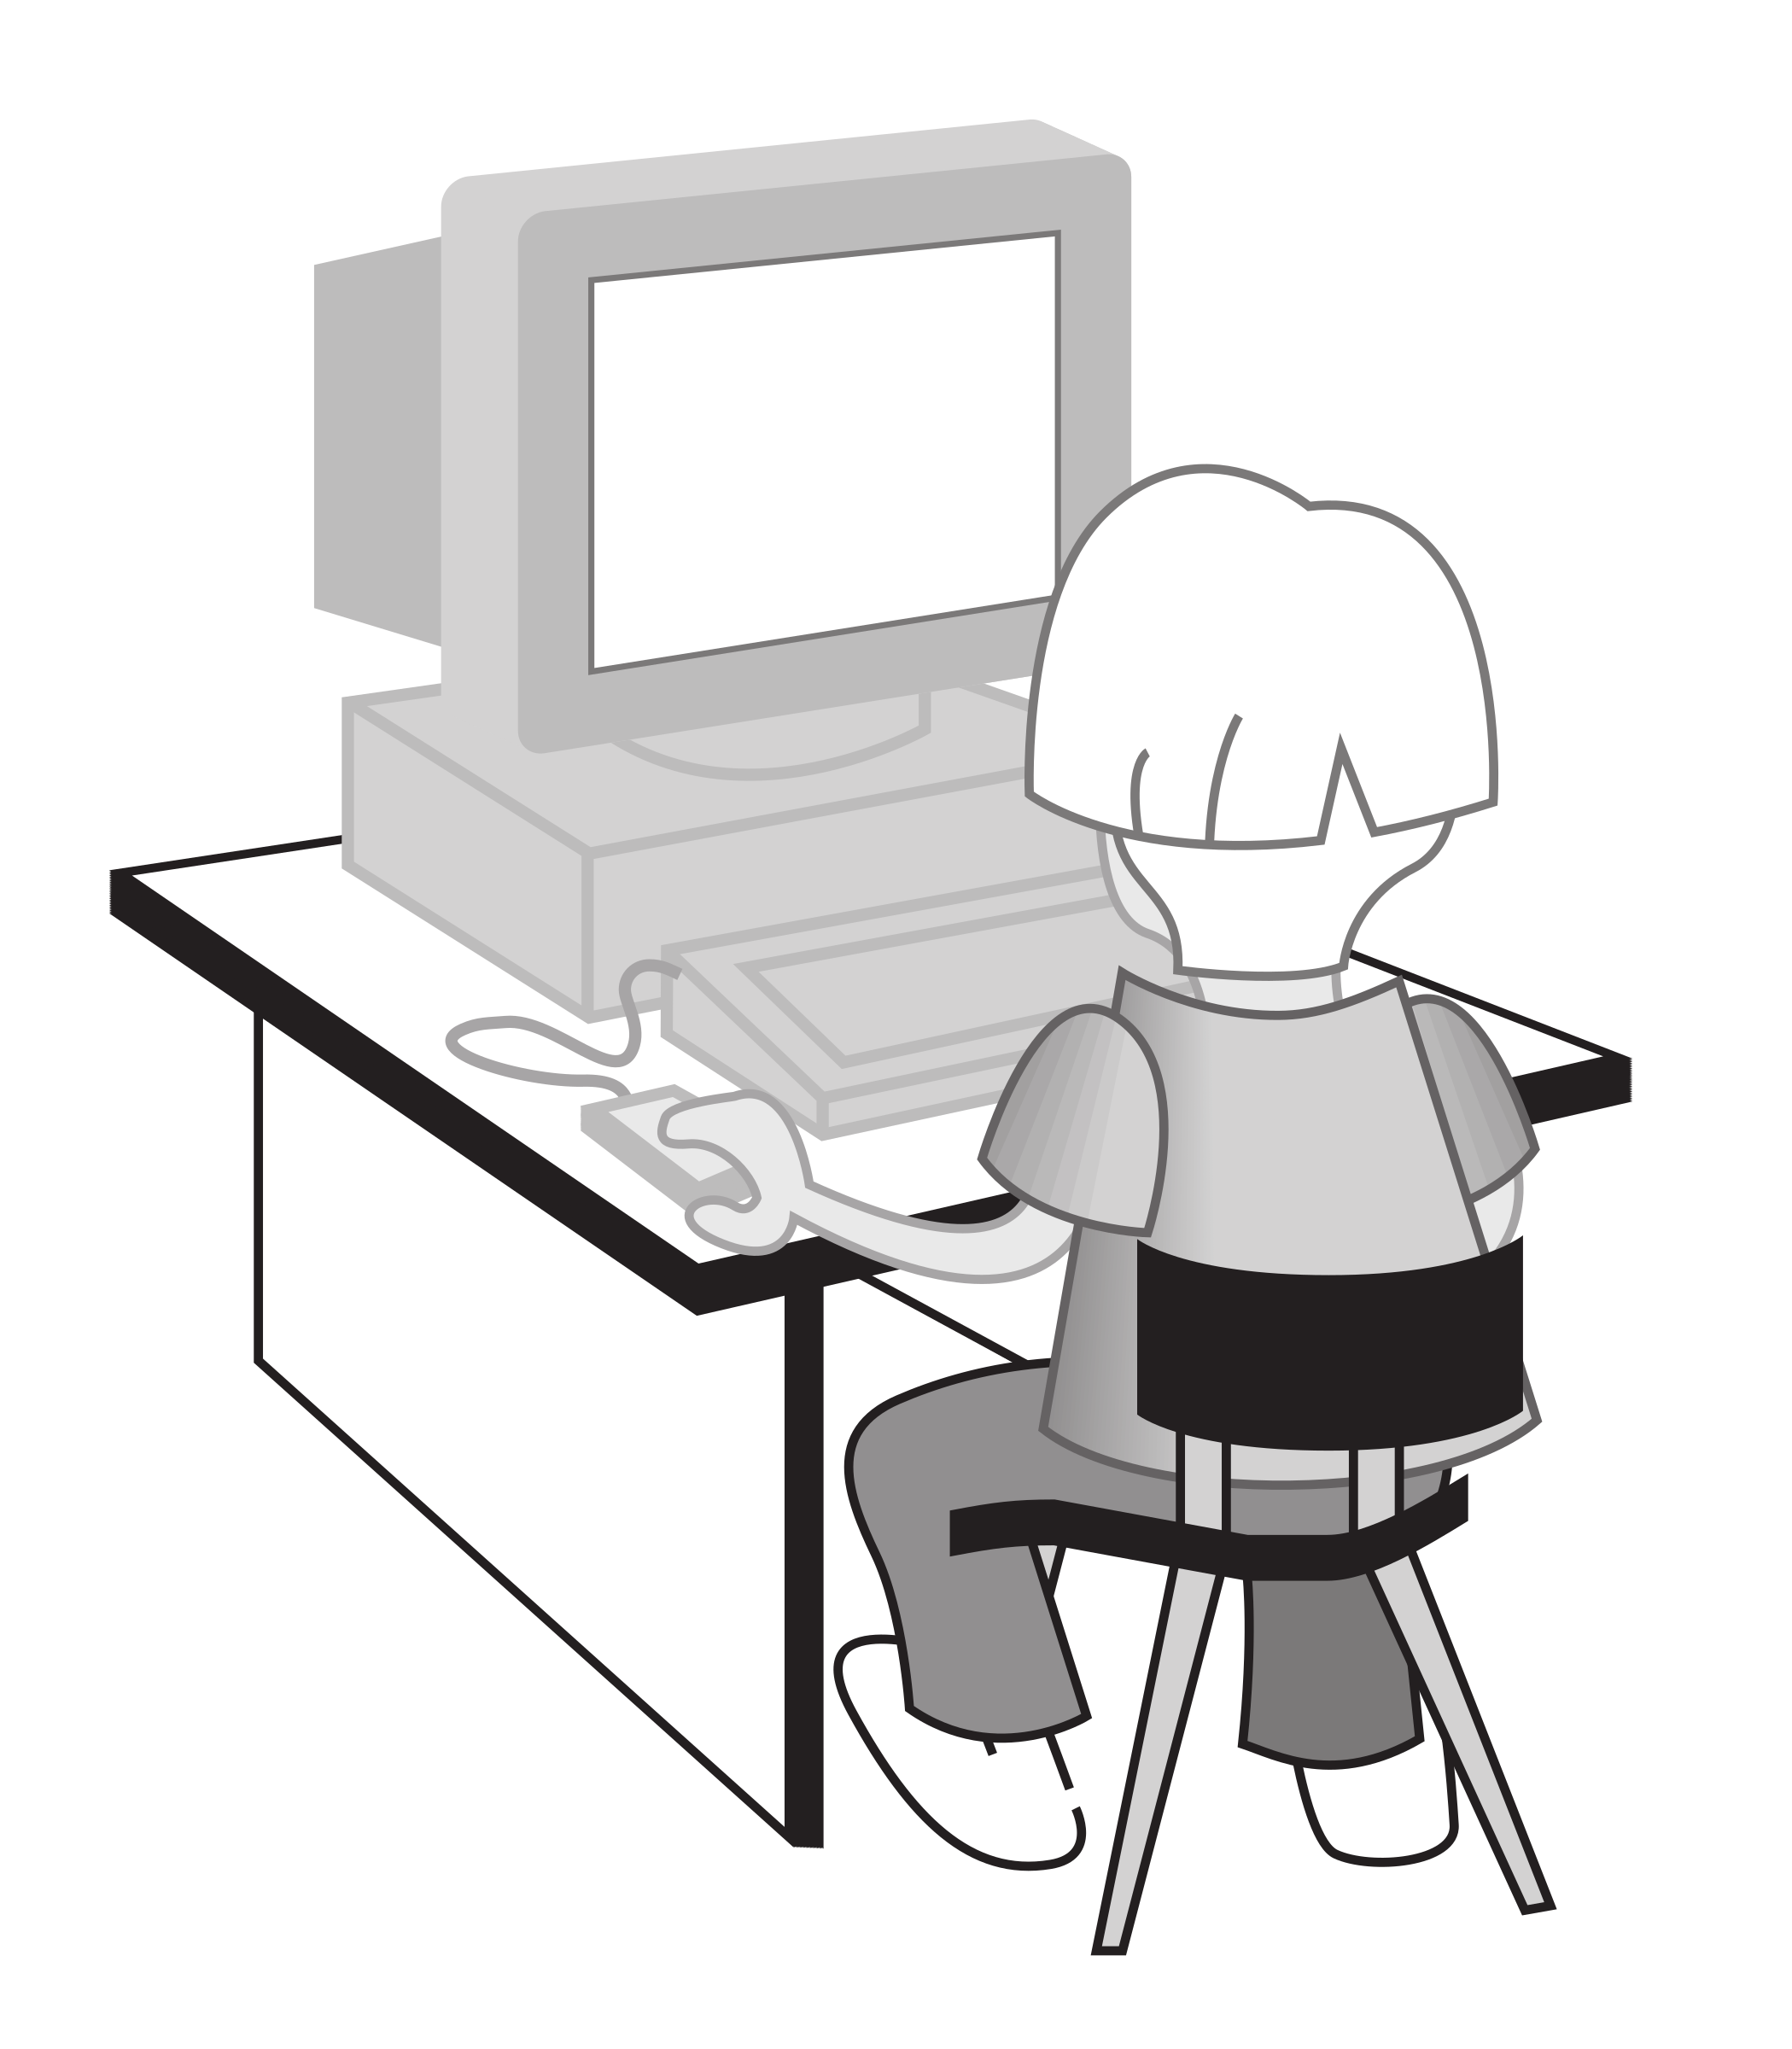 Kid at a computer by rejon